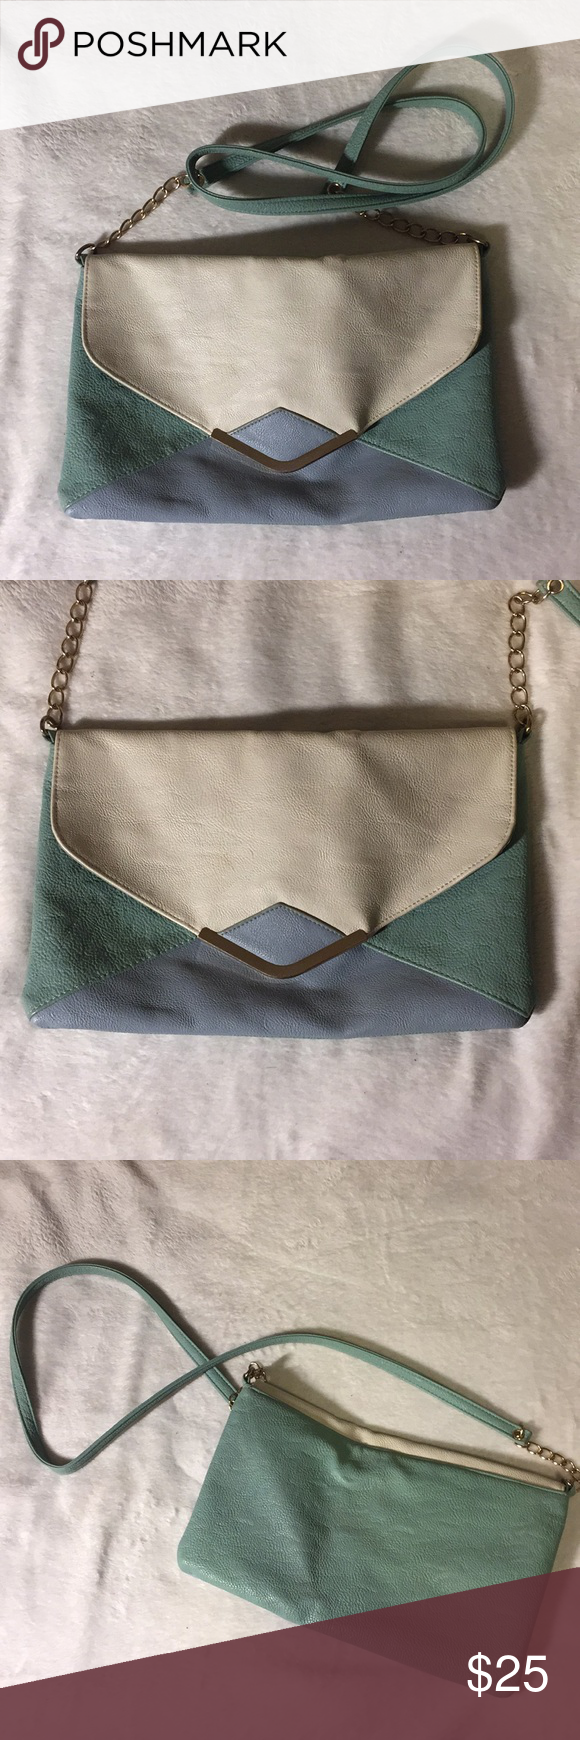 Bershka's Suite Blanco Faux Leather blue green Bag